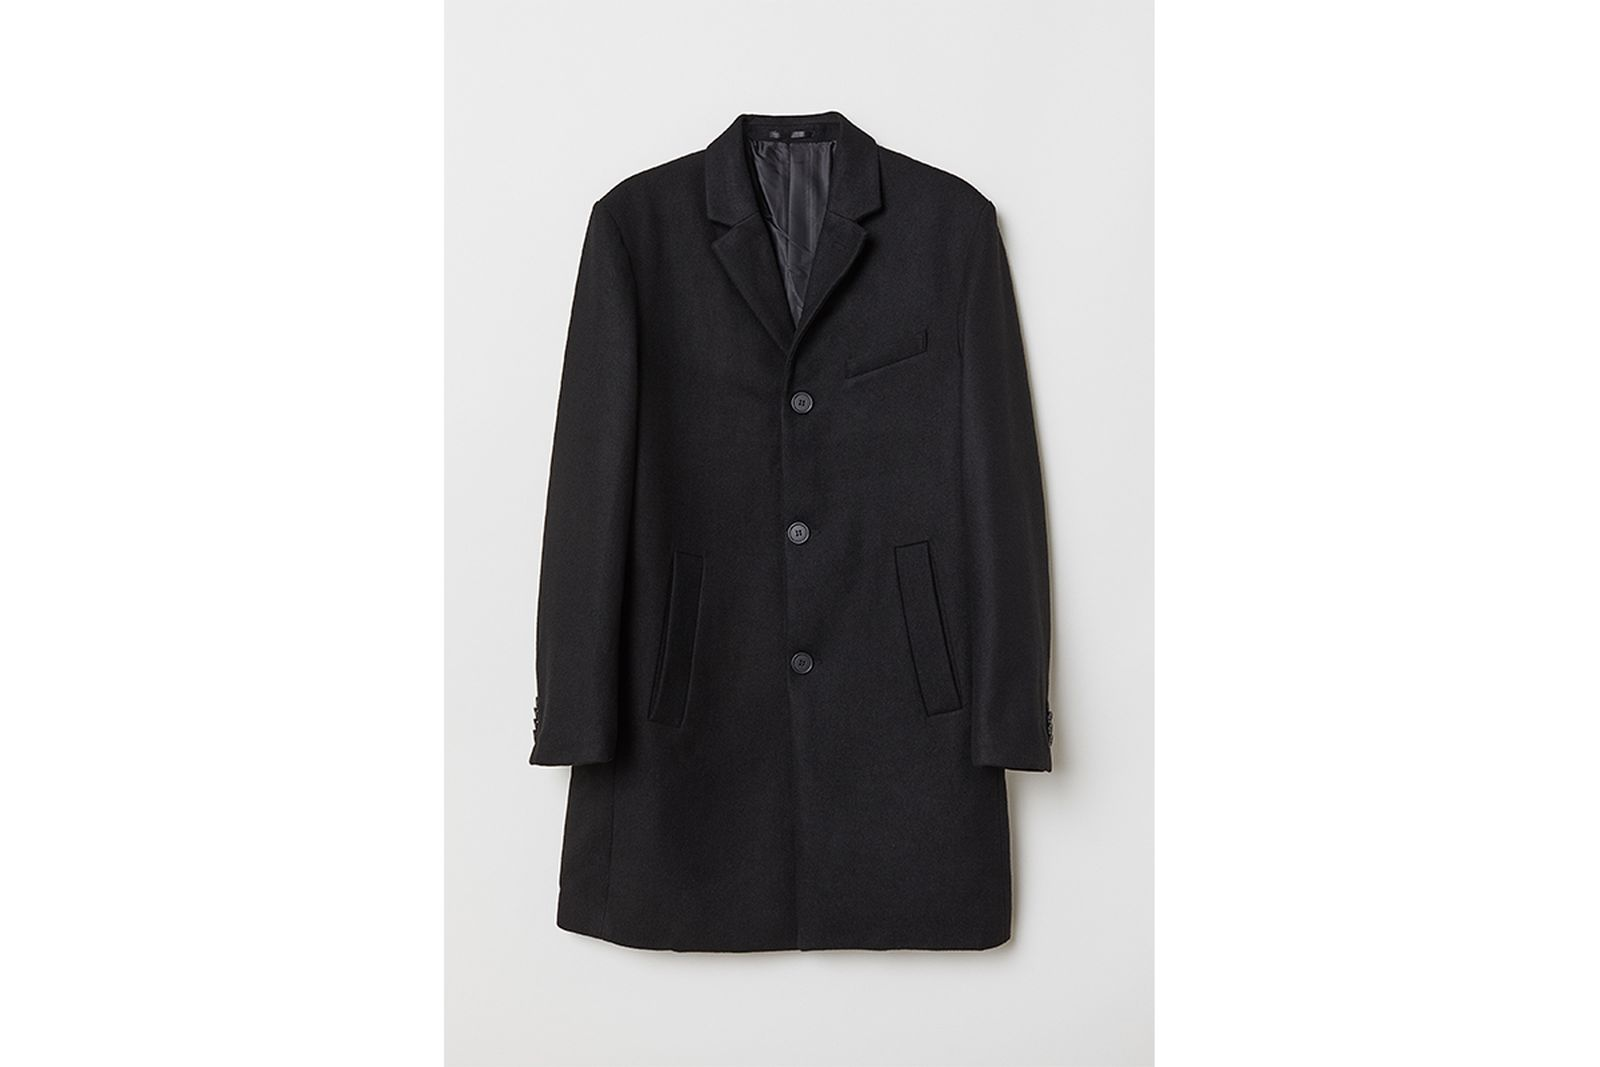 HM Wool Blend Coat Gift Guide h&m holiday